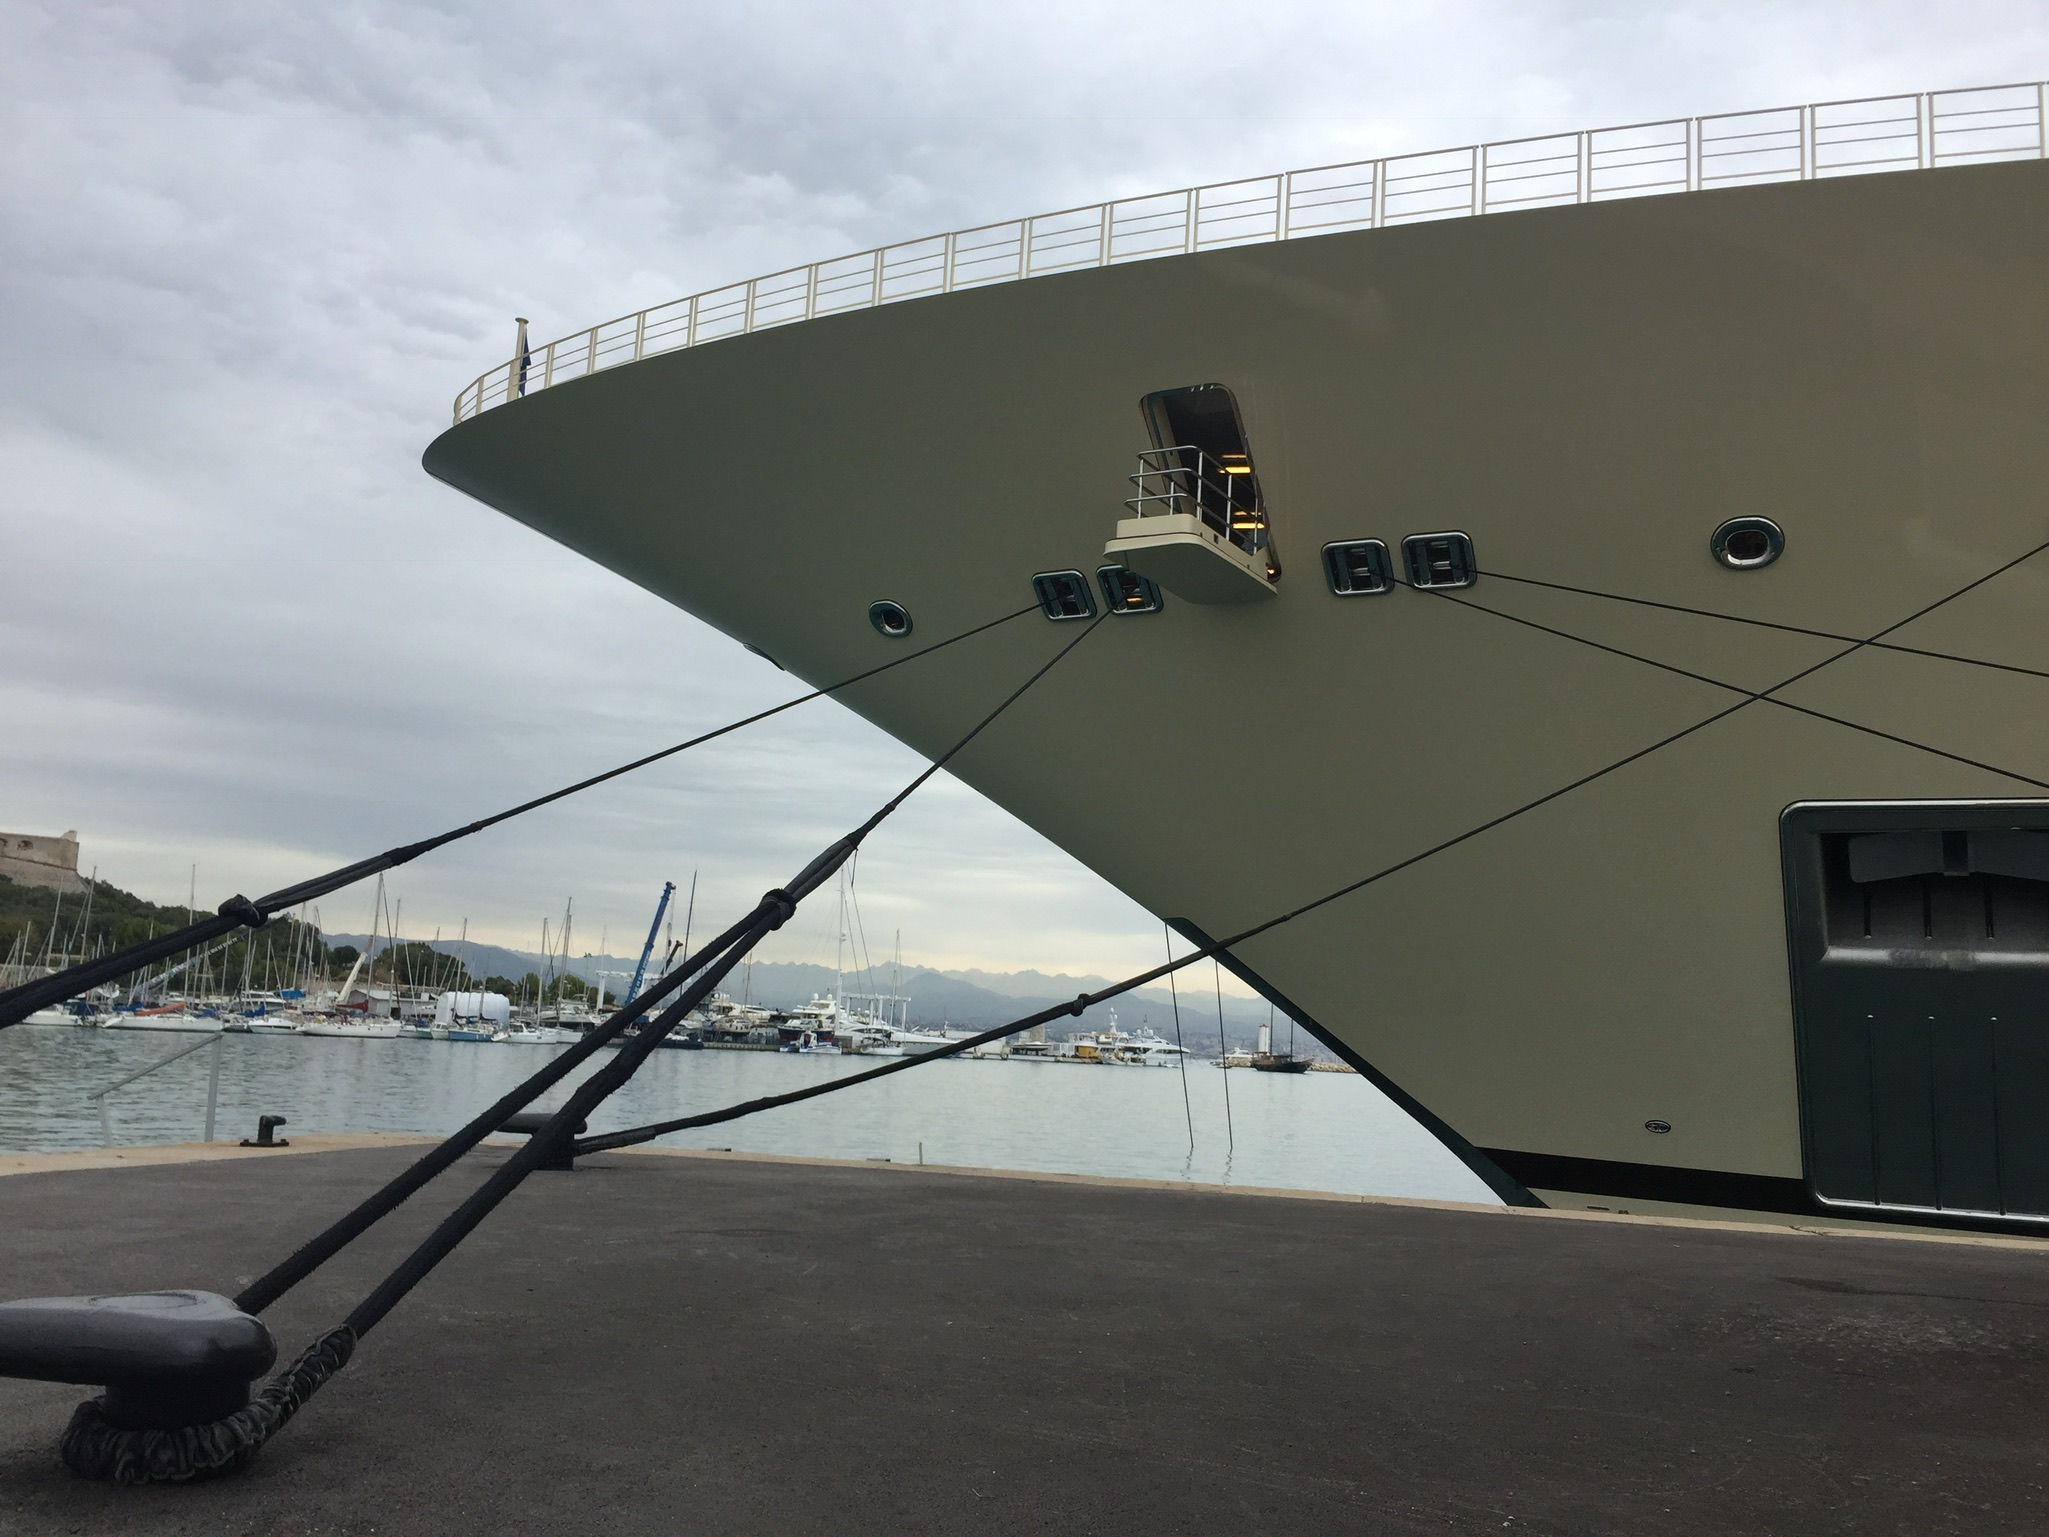 More Marine Superyacht items